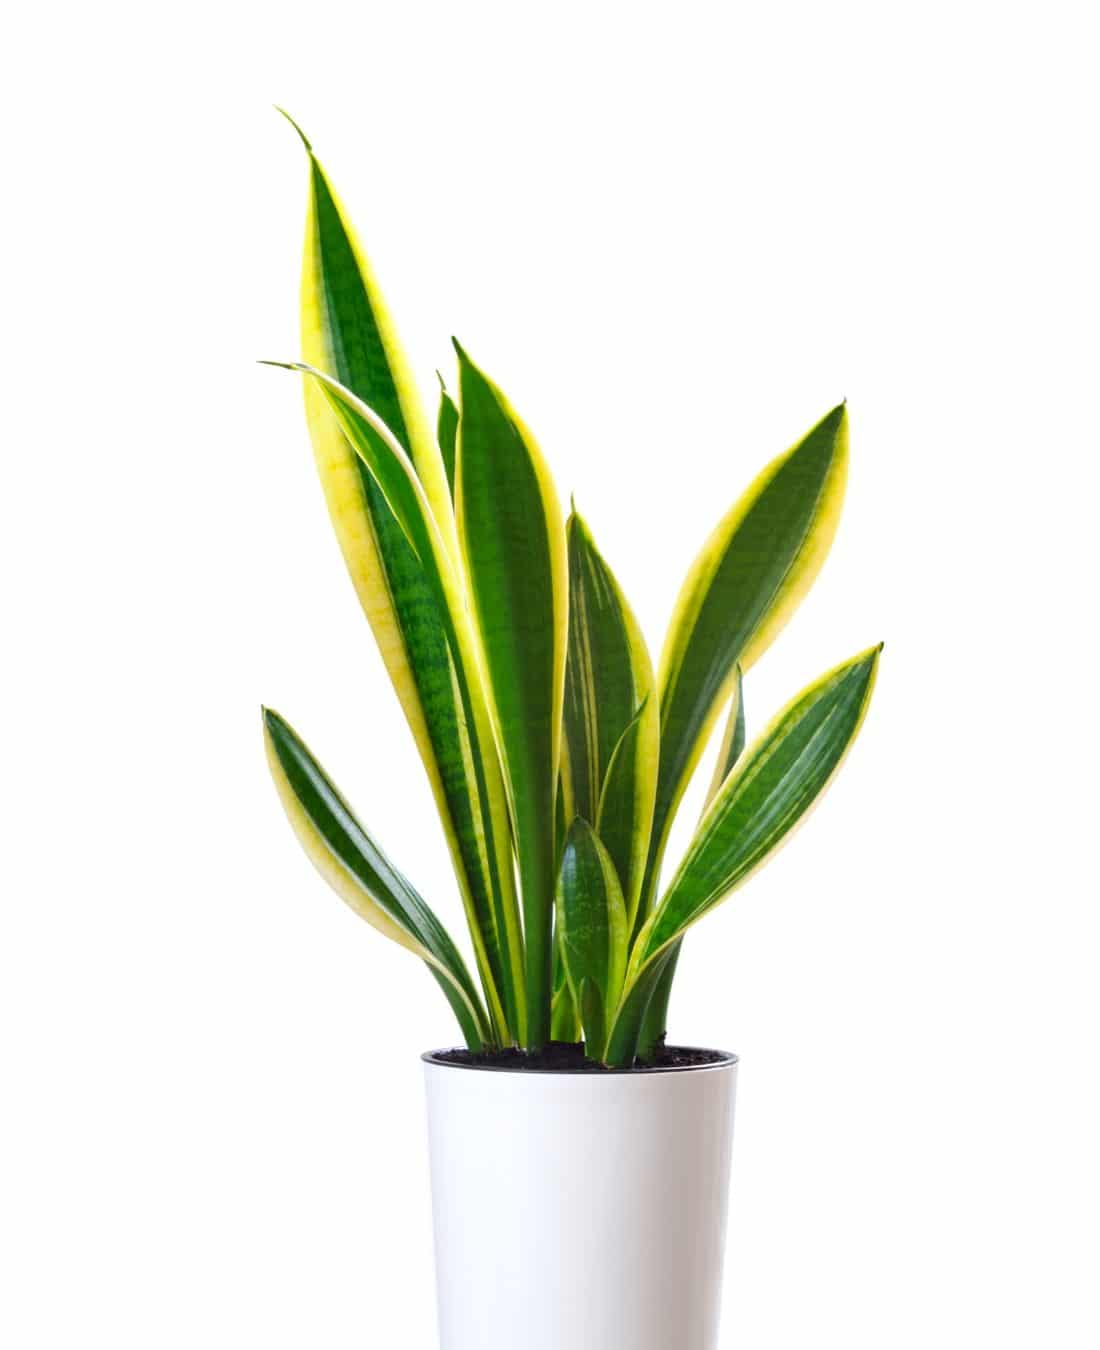 Best Office Plants | ImpeccaBuild | Snake Plants (Mother in Law's Tongue)